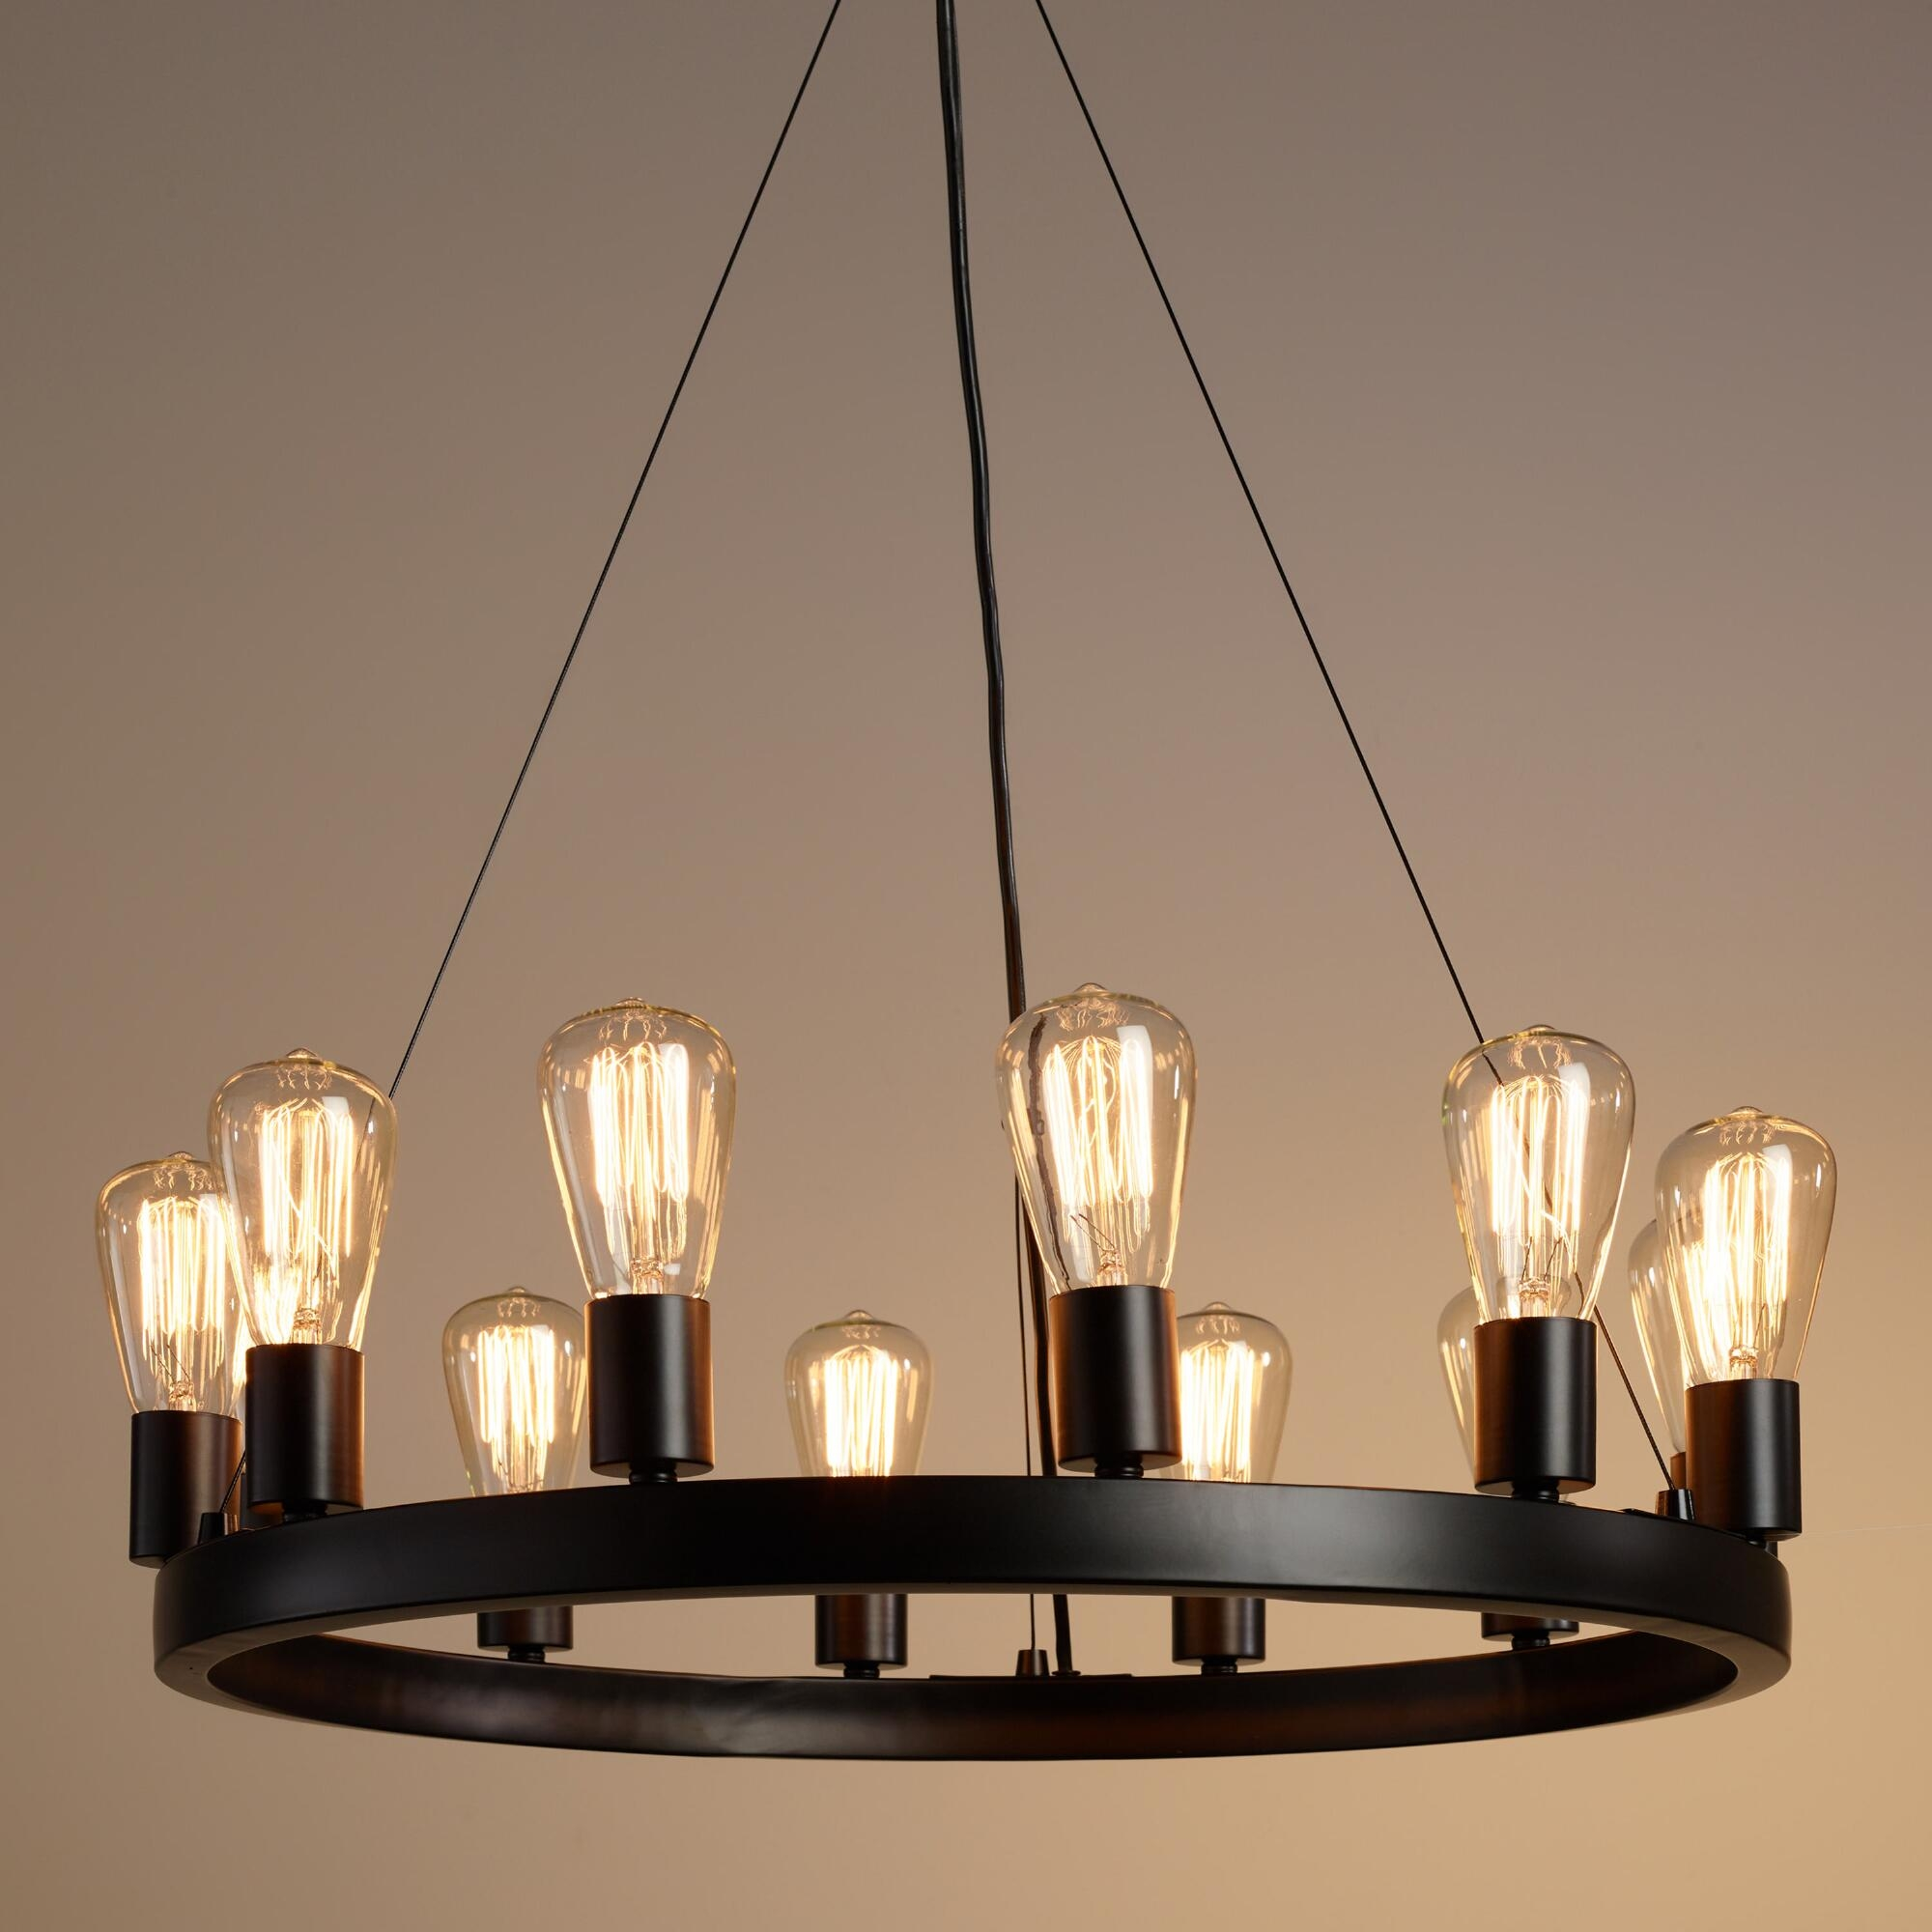 Round 12 Light Edison Bulb Chandelier Edison Bulbs Rustic And Regarding Vintage Style Chandeliers (View 5 of 15)